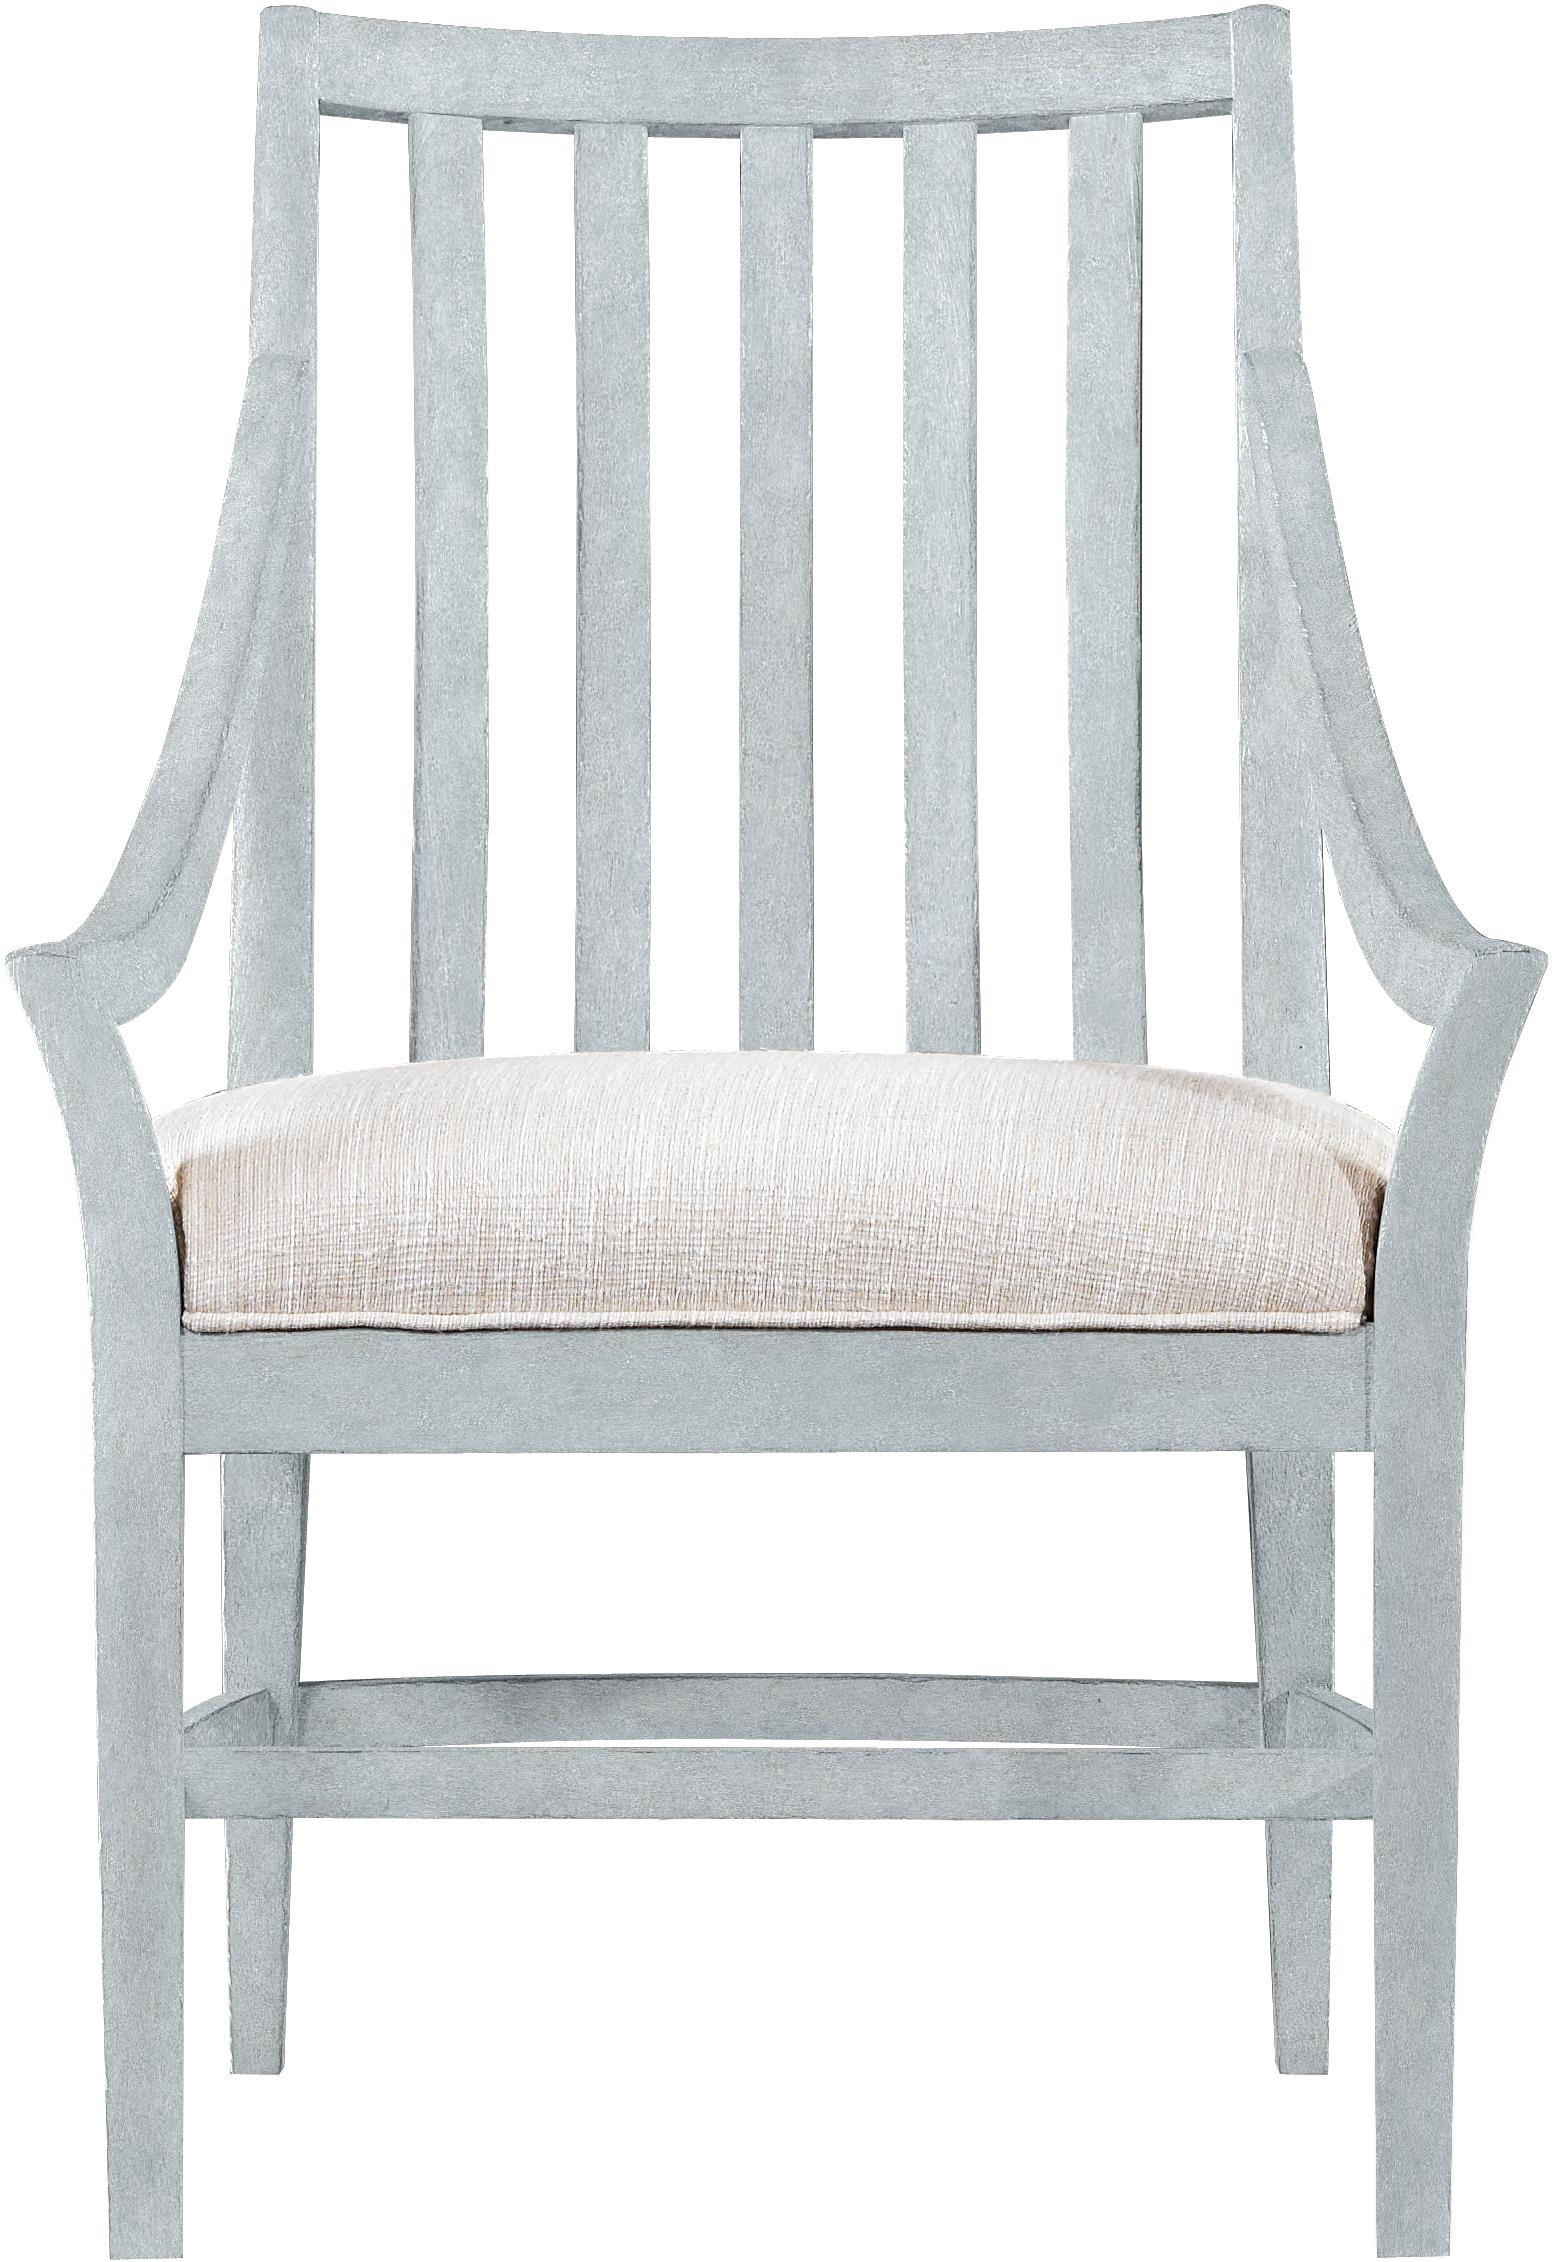 Stanley Furniture Coastal Living Resort By the Bay Dining Chair - Item Number: 062-H1-65